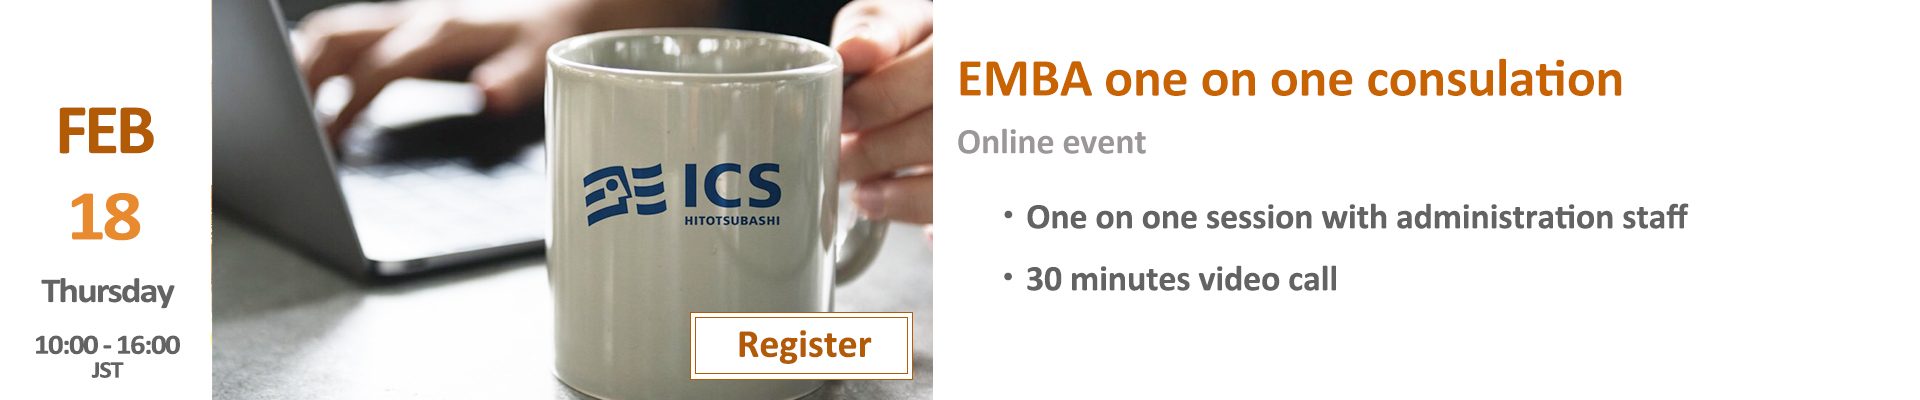 EMBA One on one _Feb.18